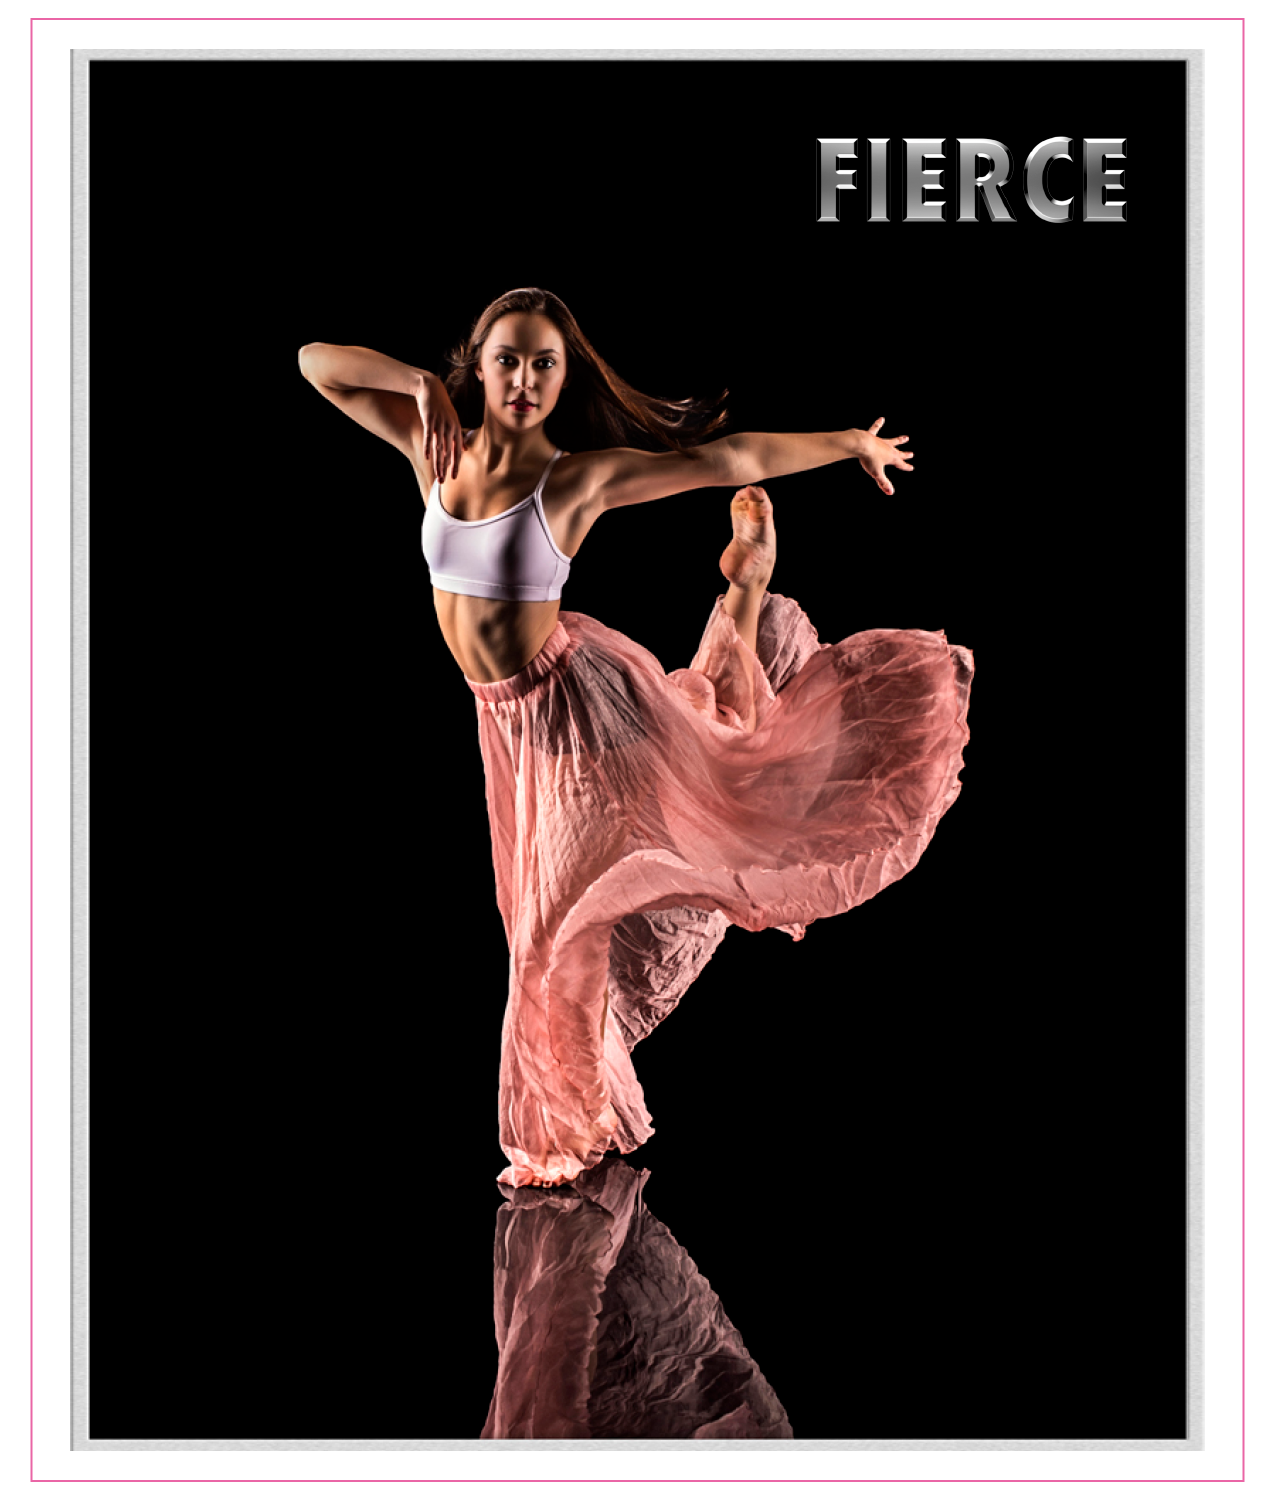 Fierce: The Book by Erica Land. Inspirational quotes and photographic images that will give you the strength and motivation to pursue your dreams.